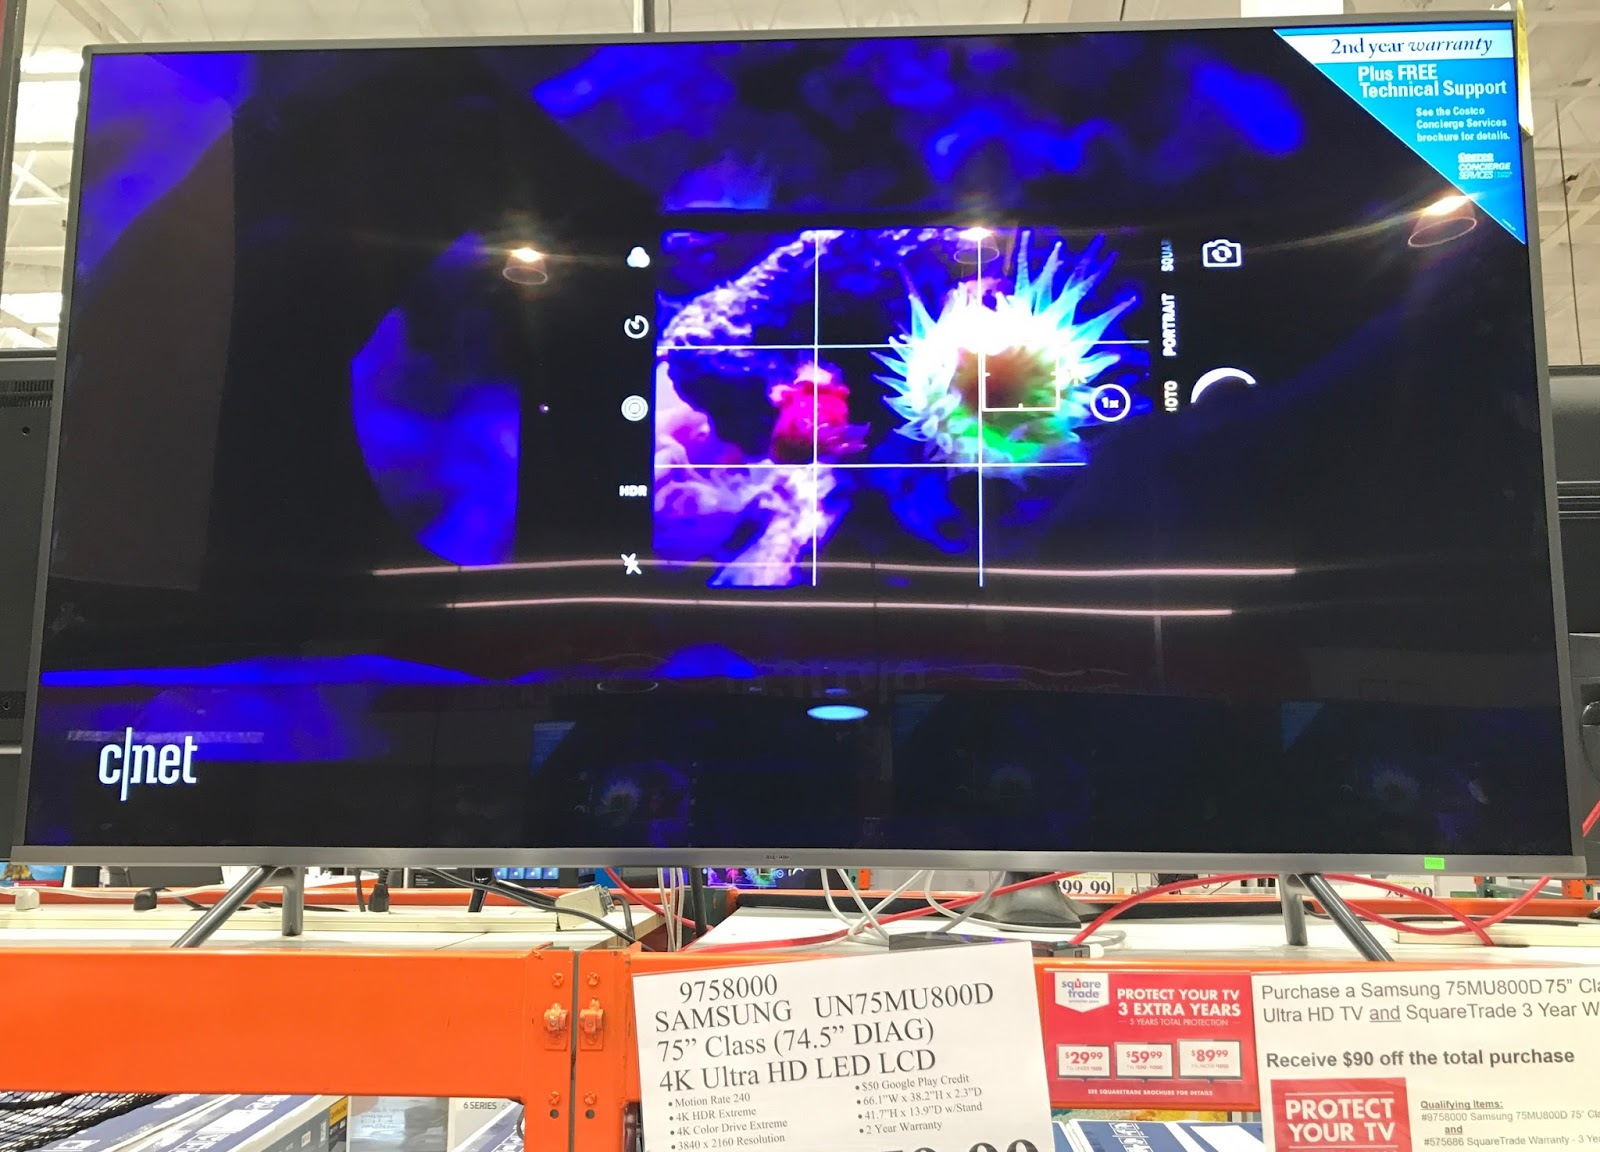 Costco 9758000 - Samsung UN75MU800D 75in 4K Ultra HD LED LCD TV: great for your family room